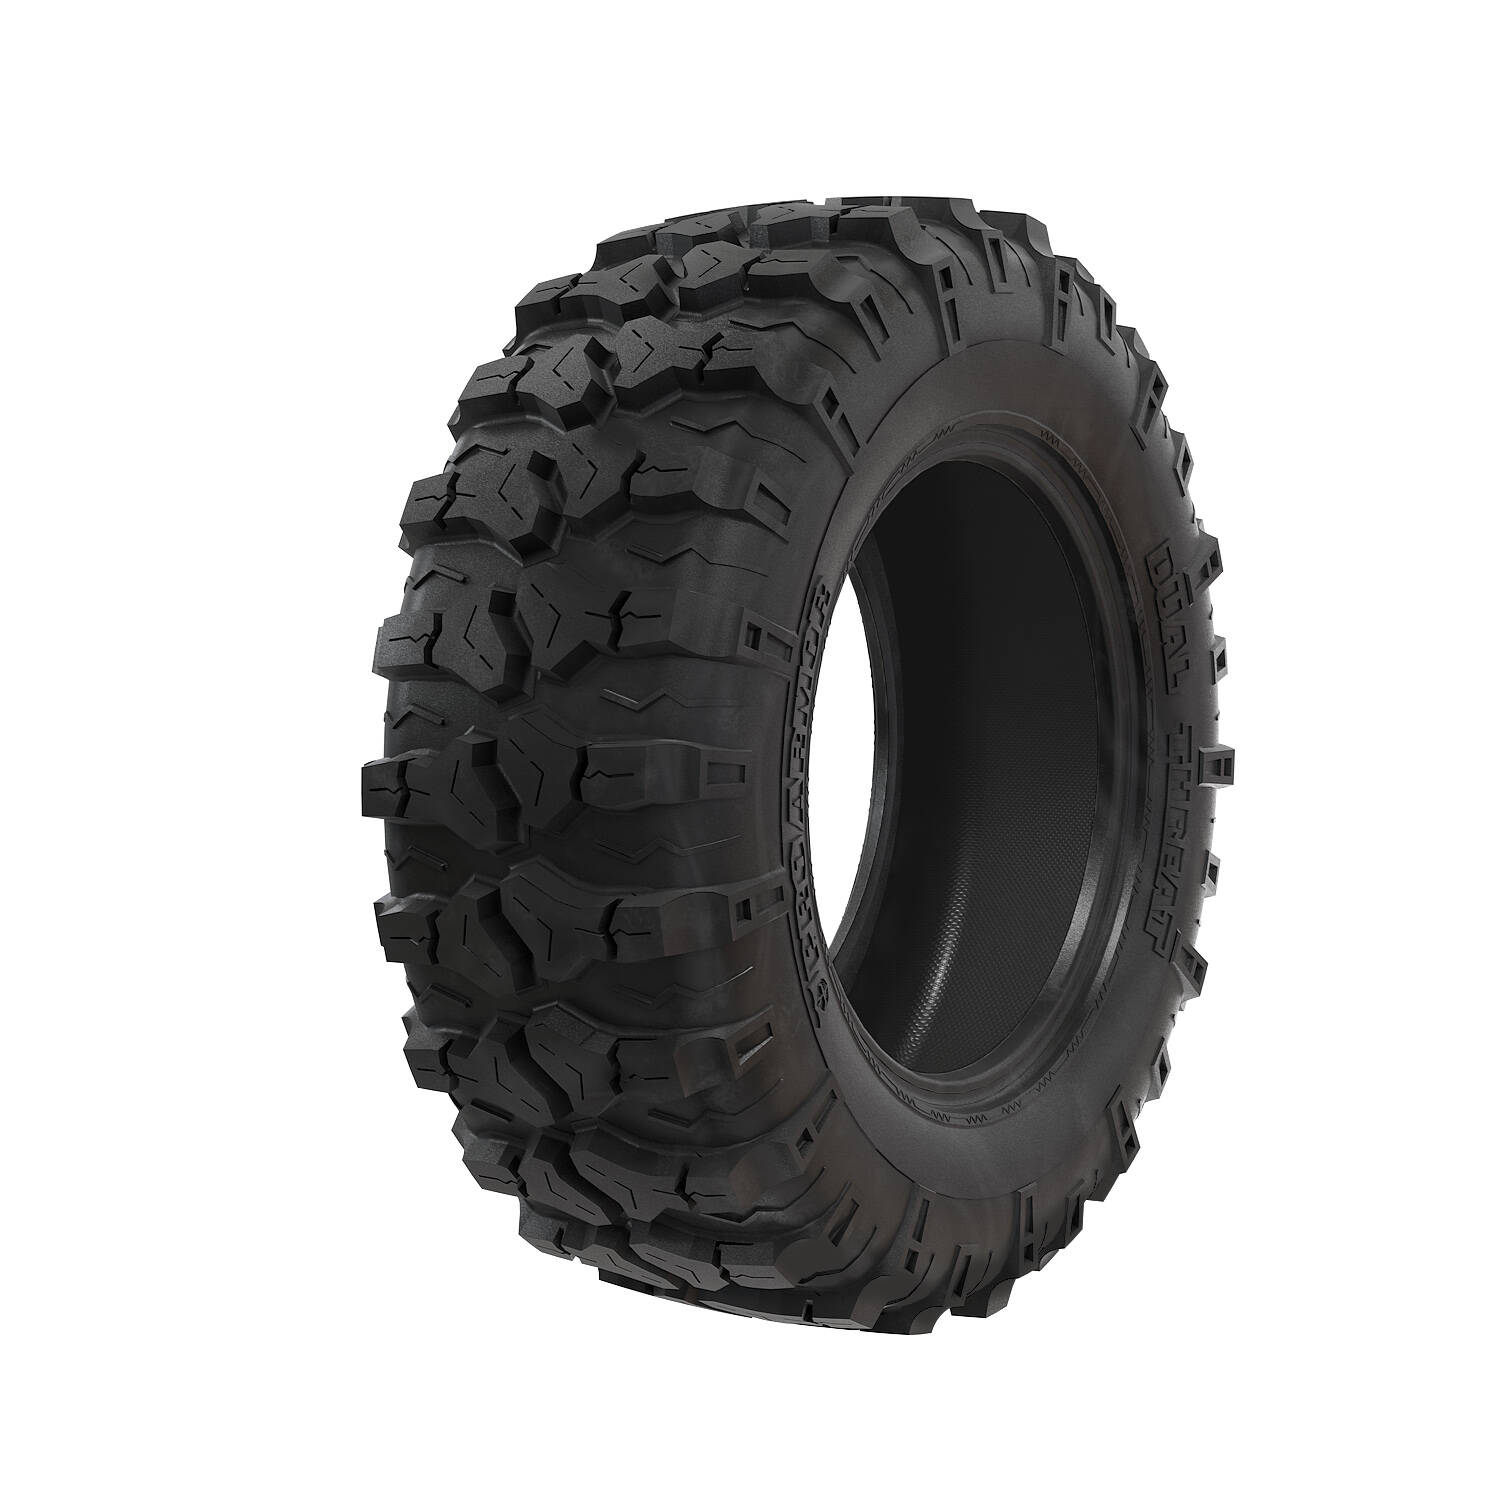 Pro Armor® Tire: Dual-Threat - Front